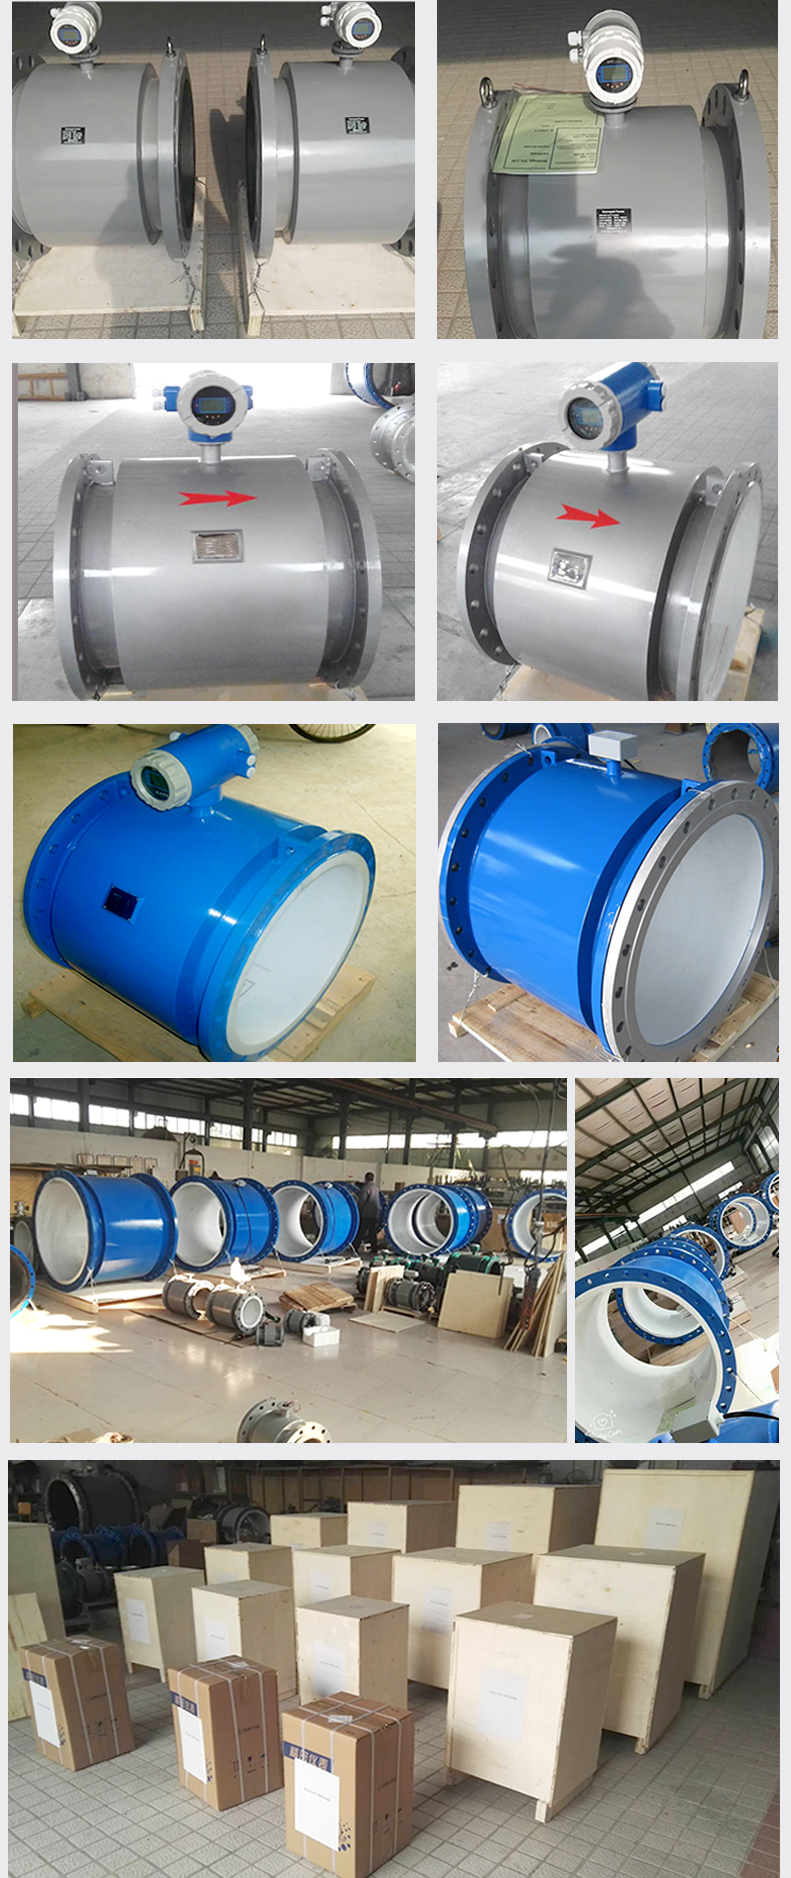 4-20mA Flange Type Electromagnetic Water Flowmeter for Water Flow